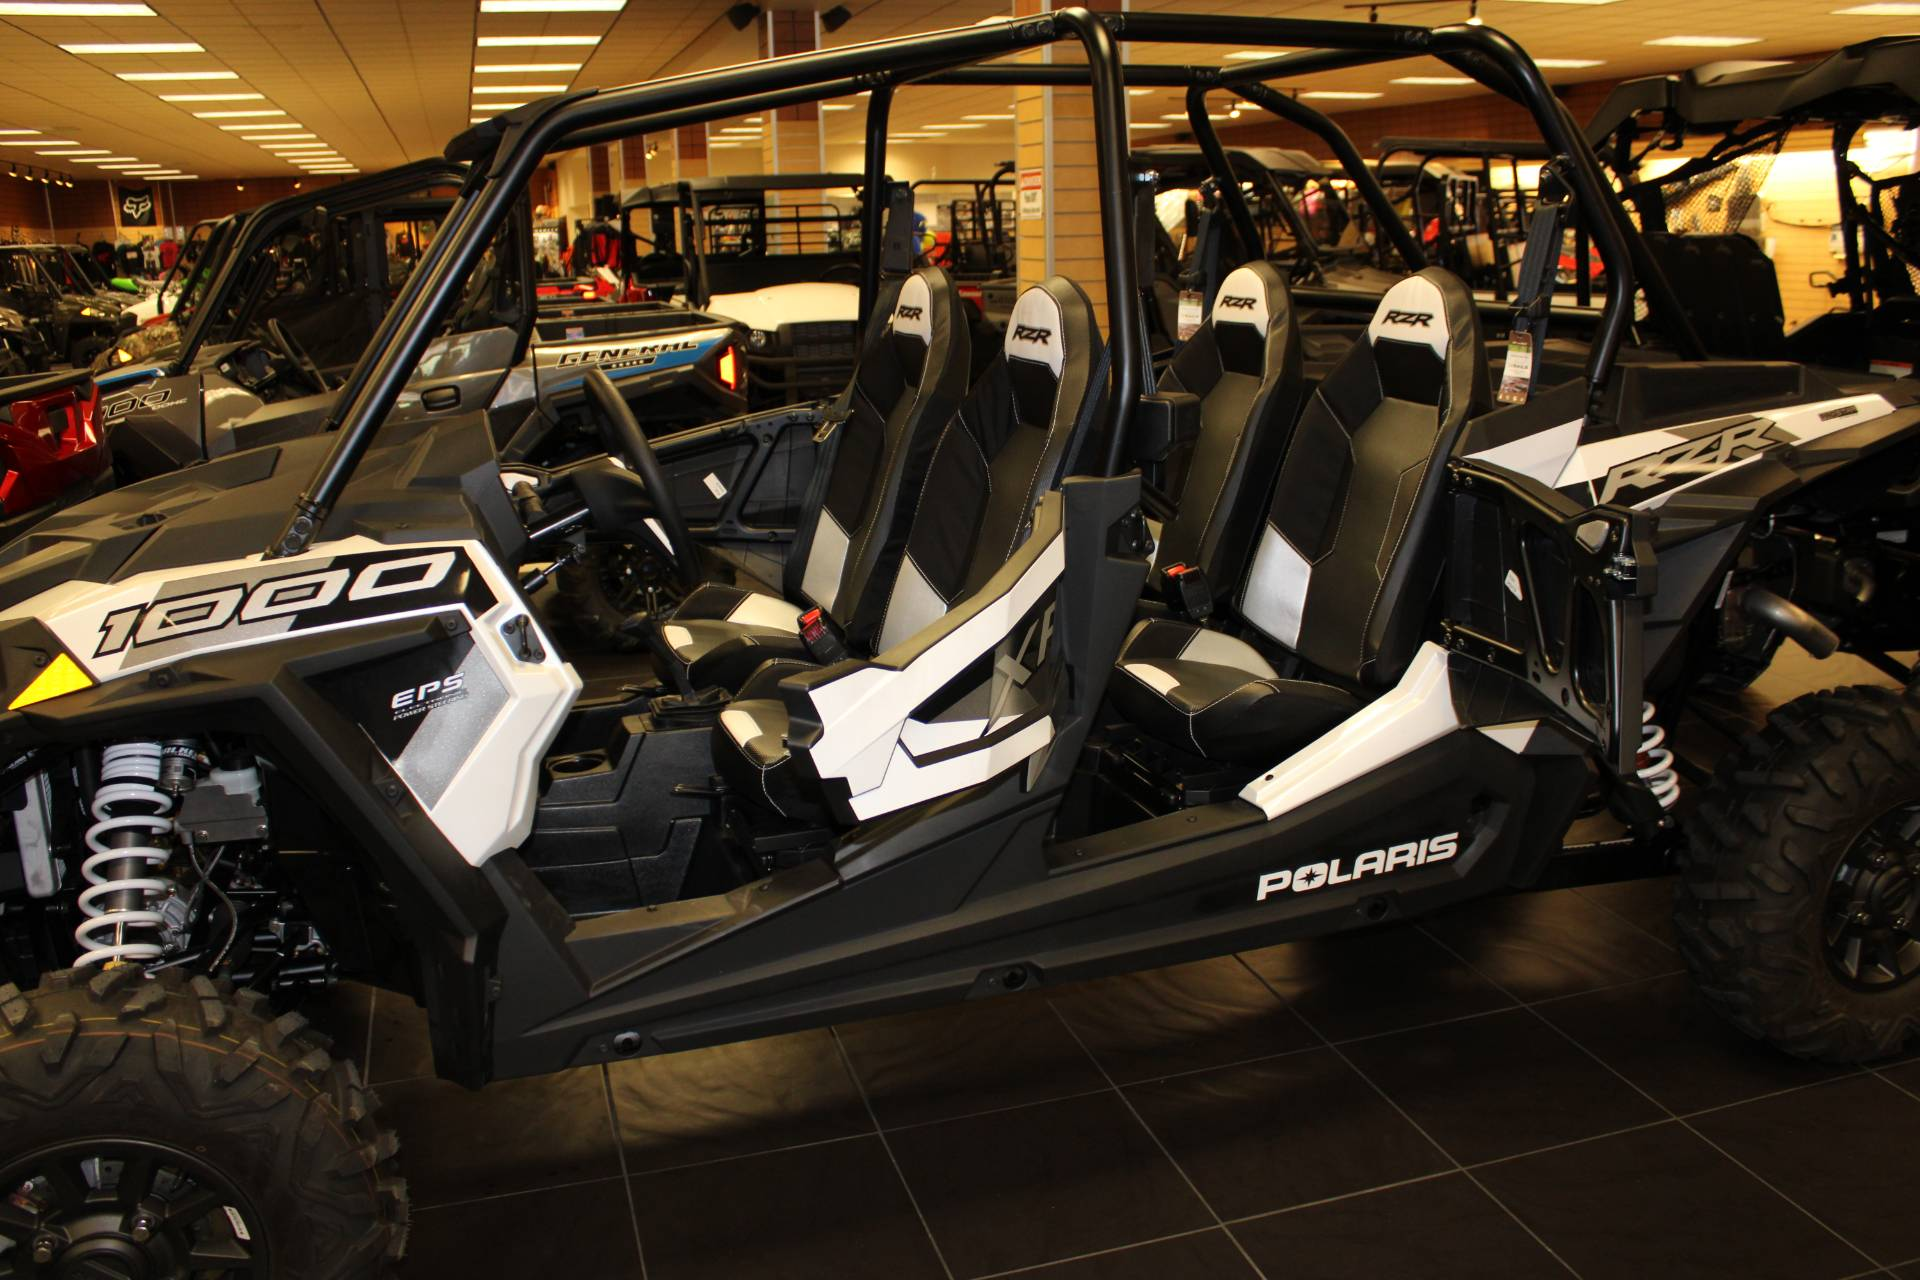 2019 Polaris RZR XP 4 1000 EPS in Chanute, Kansas - Photo 22